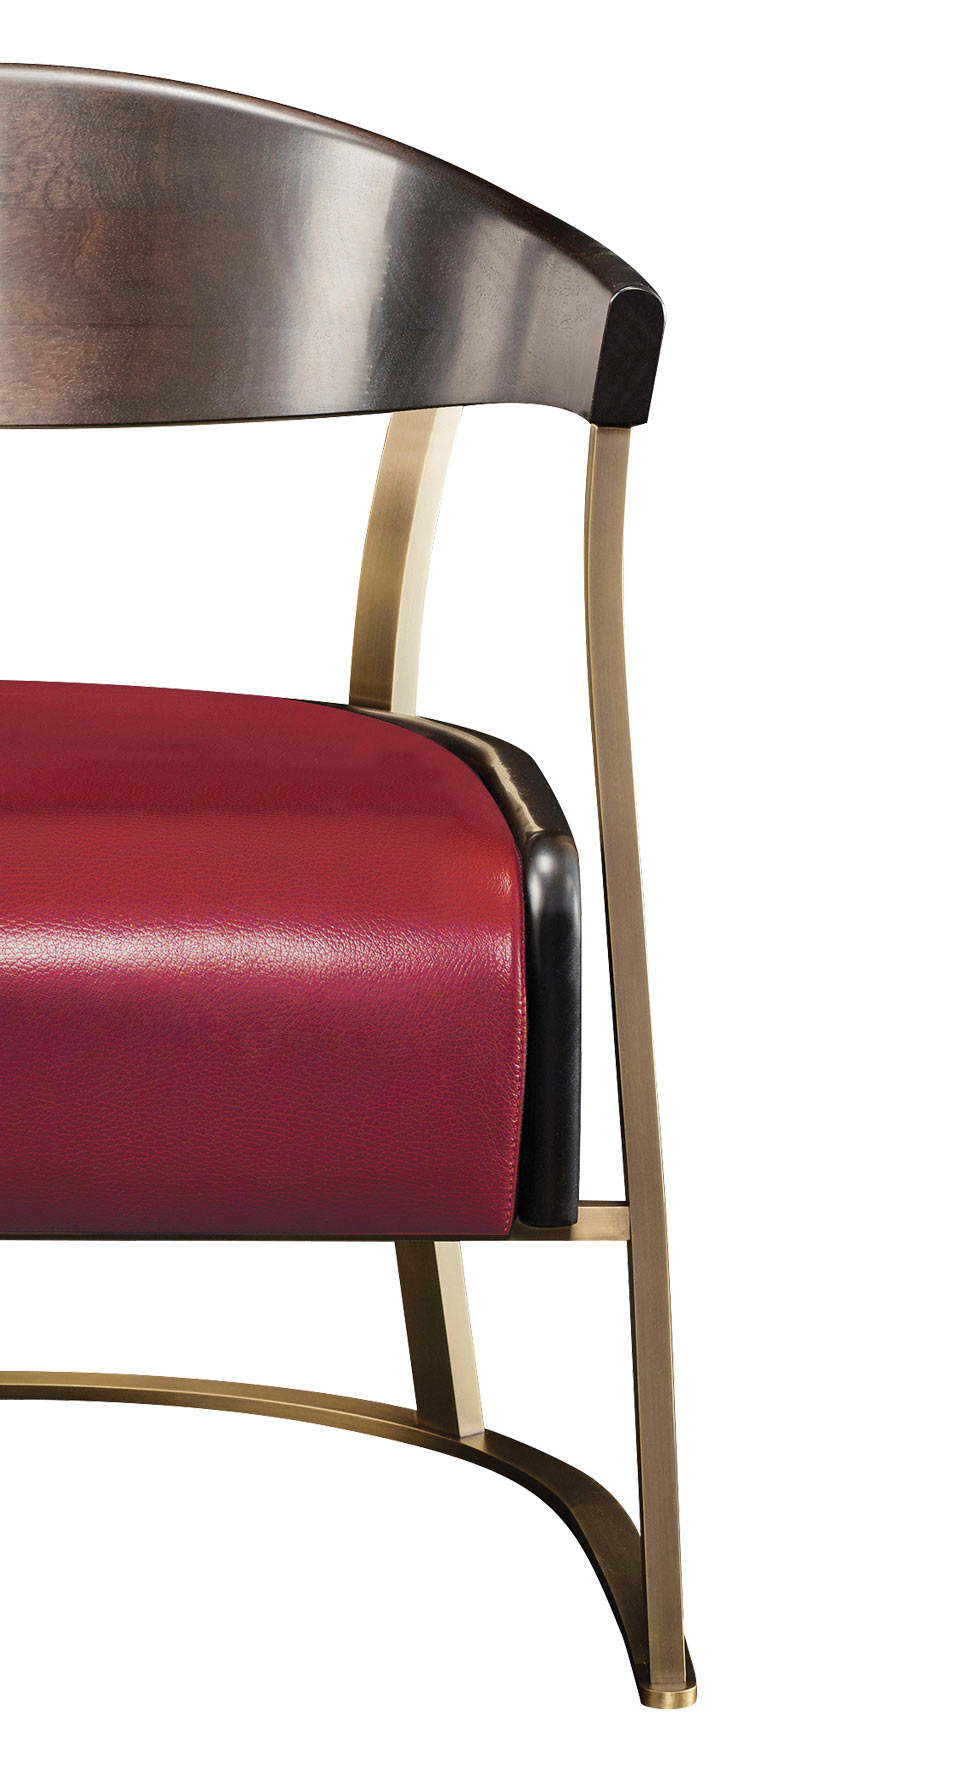 Detail of Rachele, a bronze armchair covered in leather, from Promemoria's catalogue | Promemoria